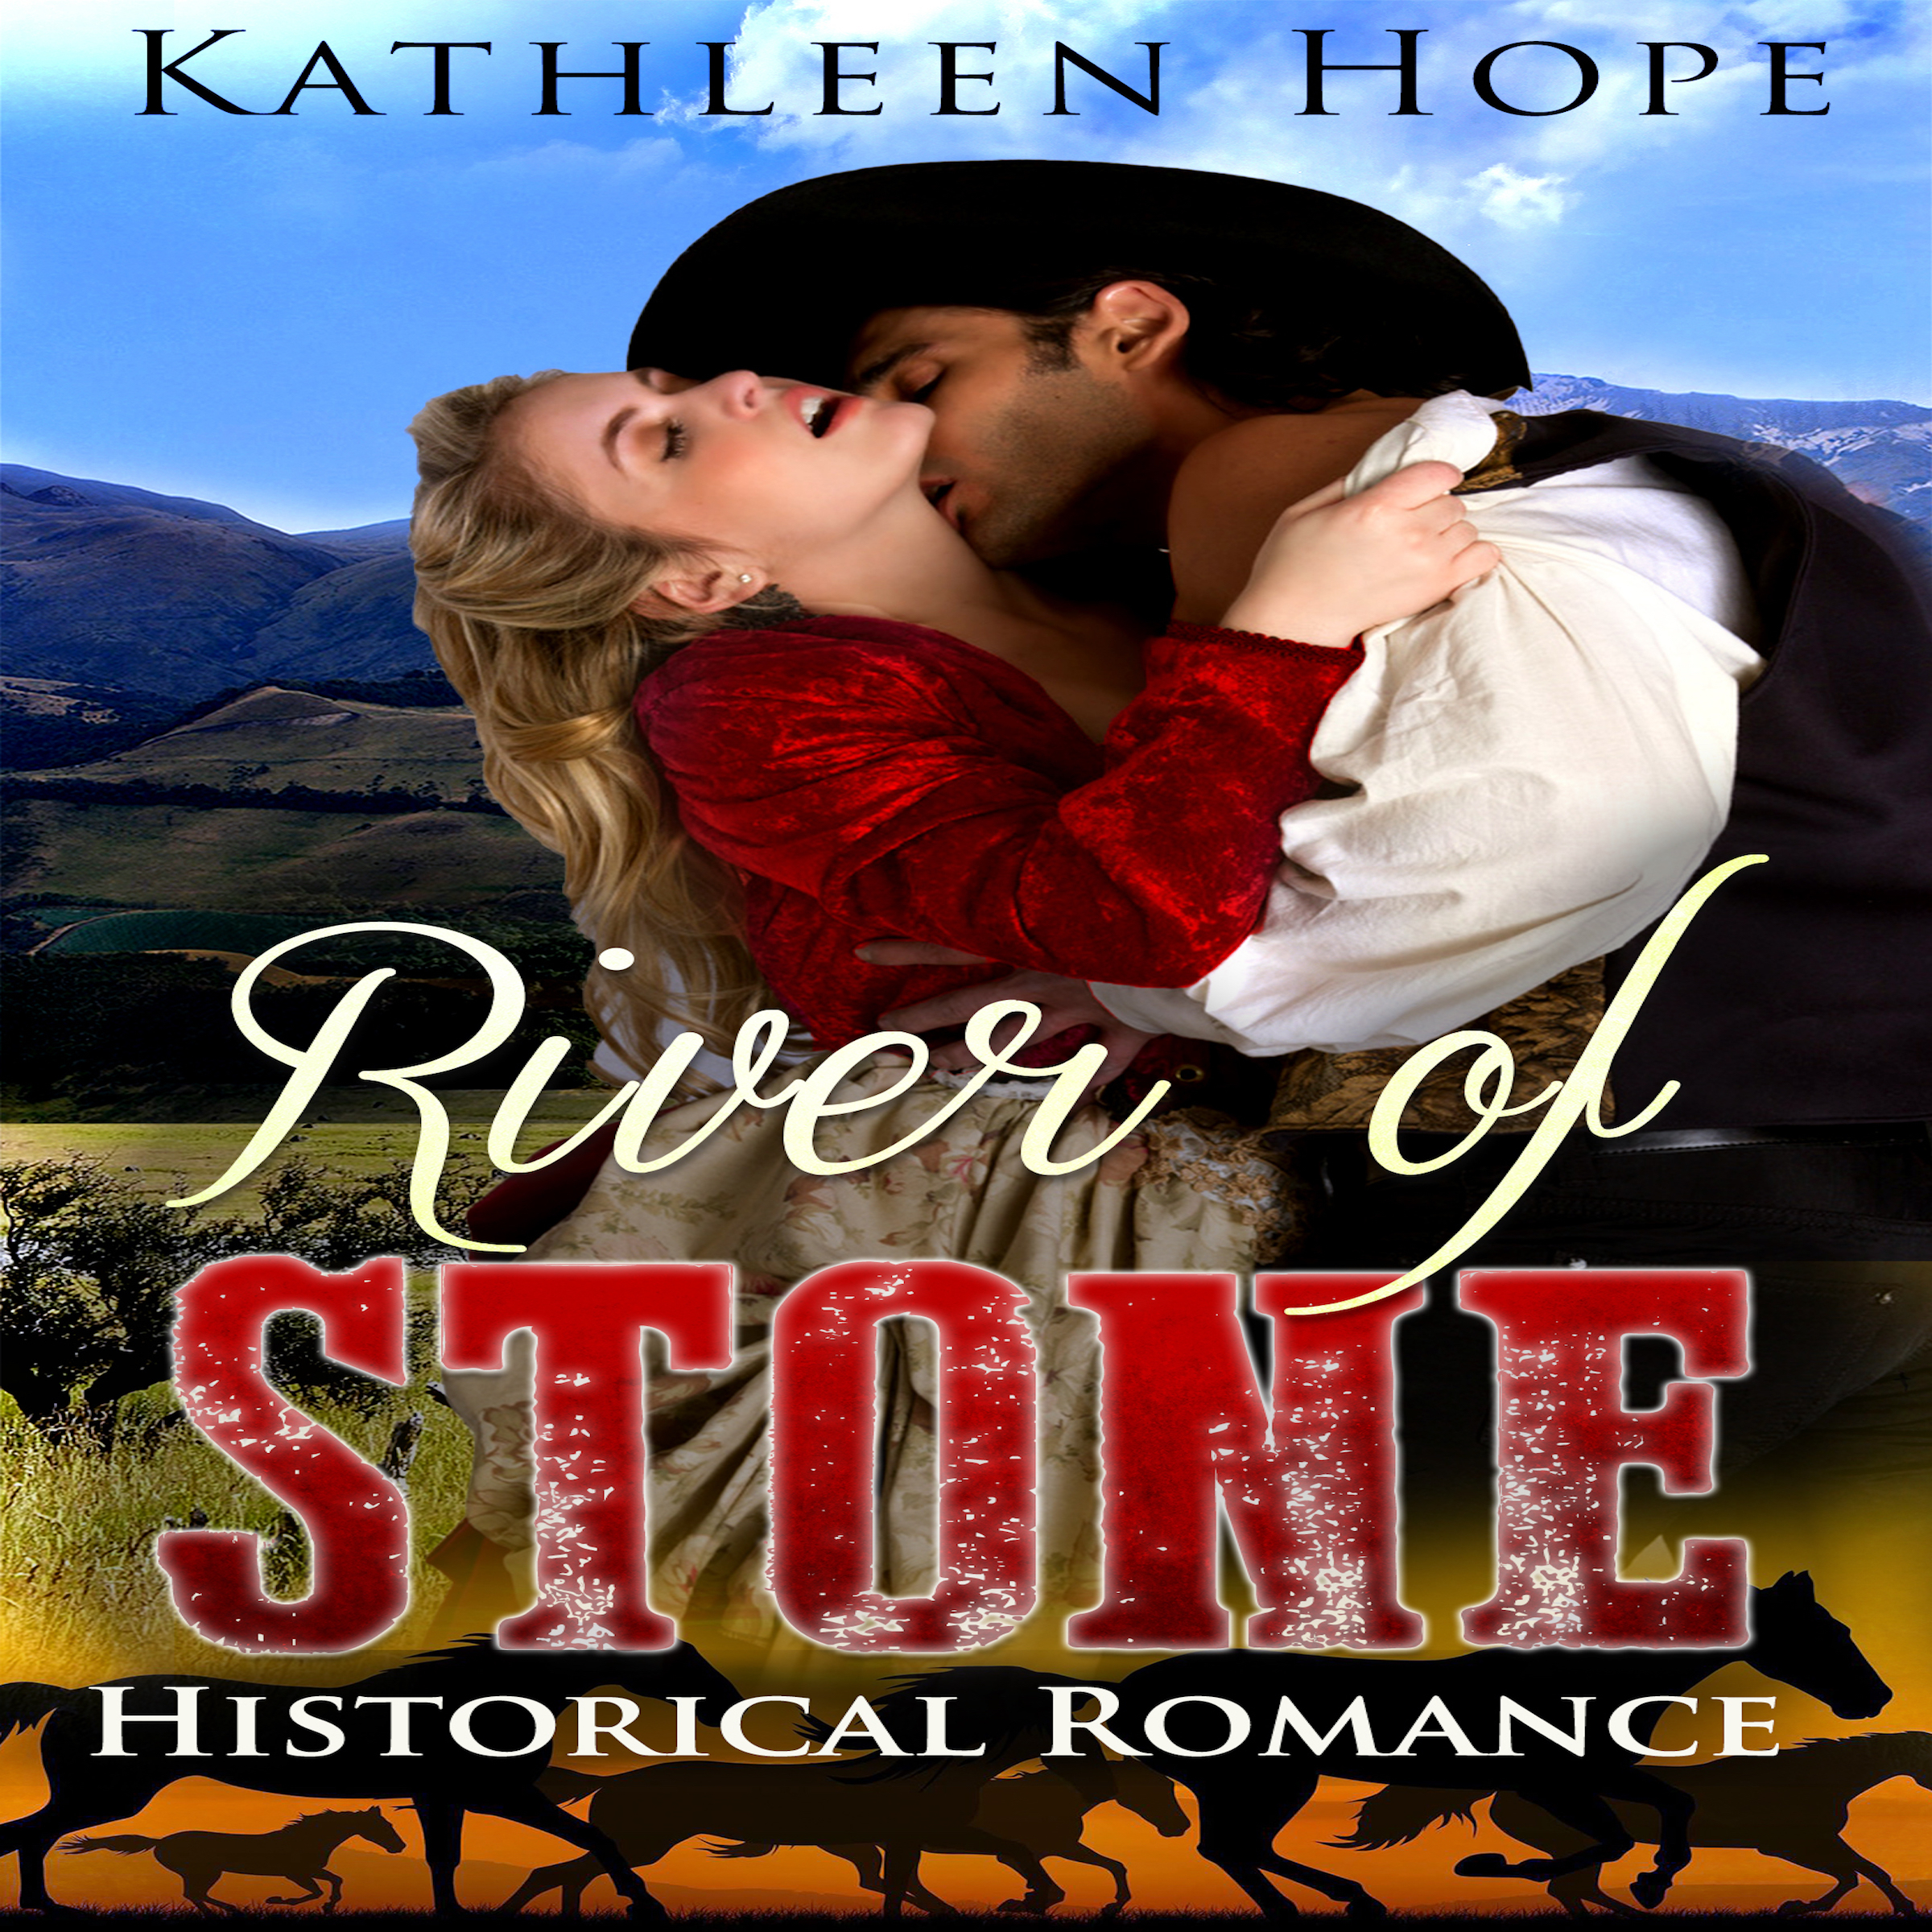 Printable Historical Romance: River of Stone Audiobook Cover Art